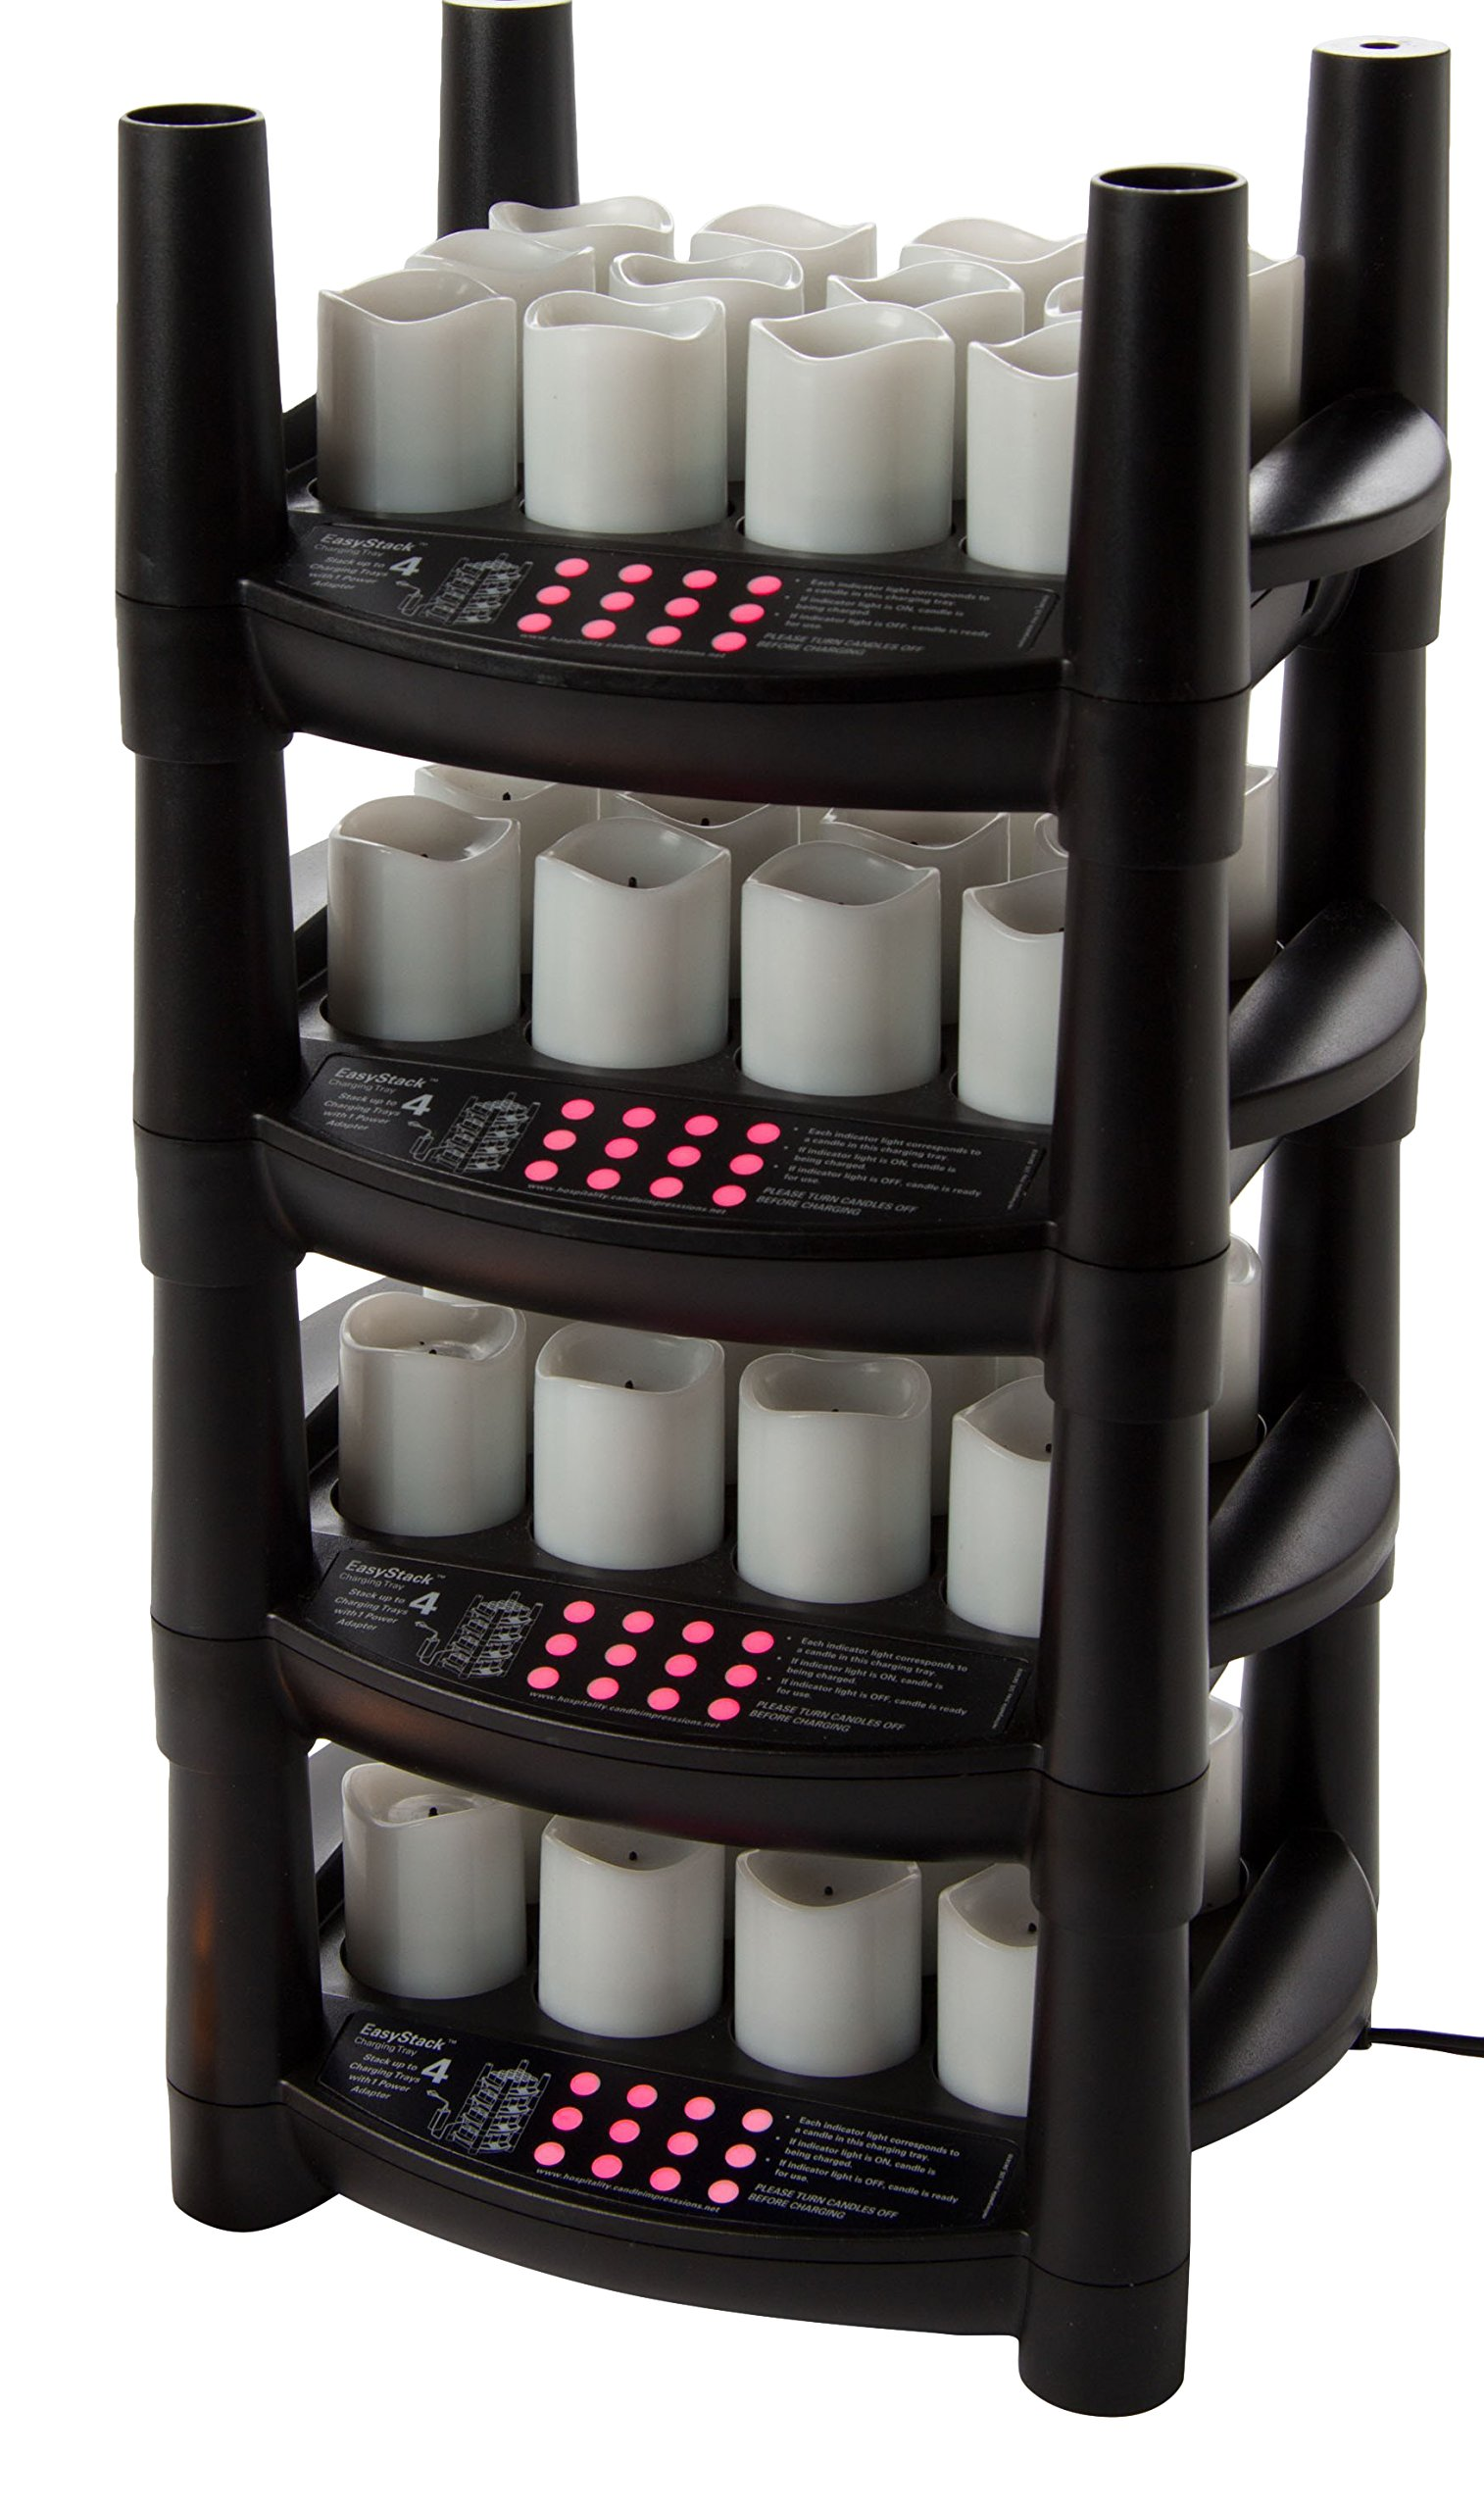 Sterno 48 Piece Warm White Flameless Votive 4 EasyStack Charging Bases and 1 Power Adapter Products 60238 Rechargeable Candle Set